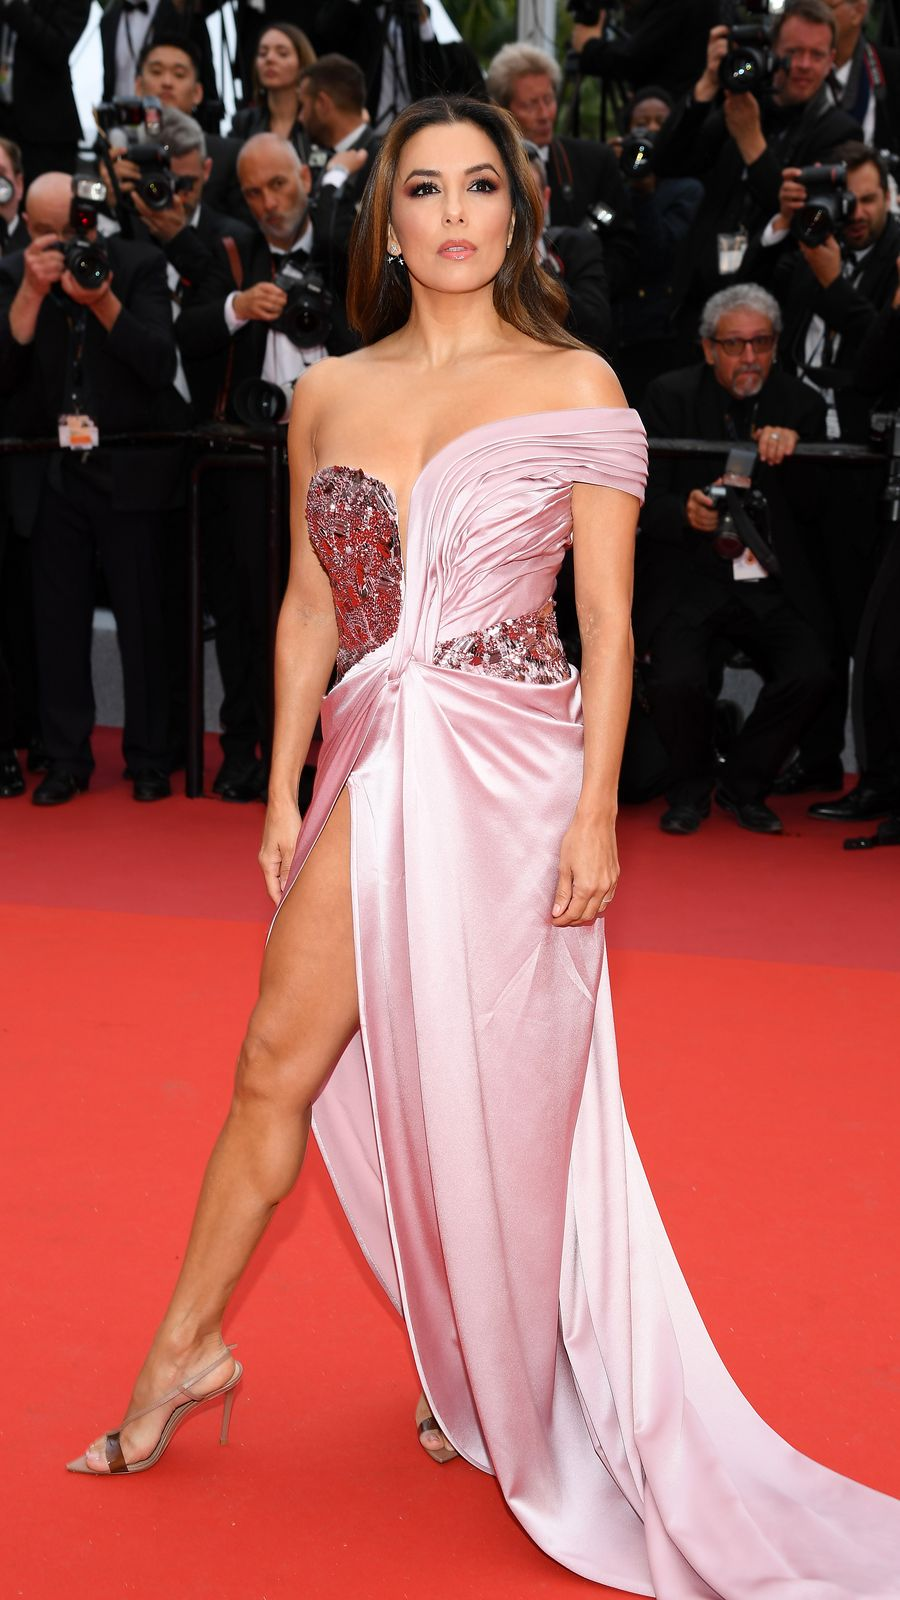 """Eva Longoria at the opening ceremony of """"The Dead Don't Die"""" during the 72nd annual Cannes Film Festival on May 14, 2019 